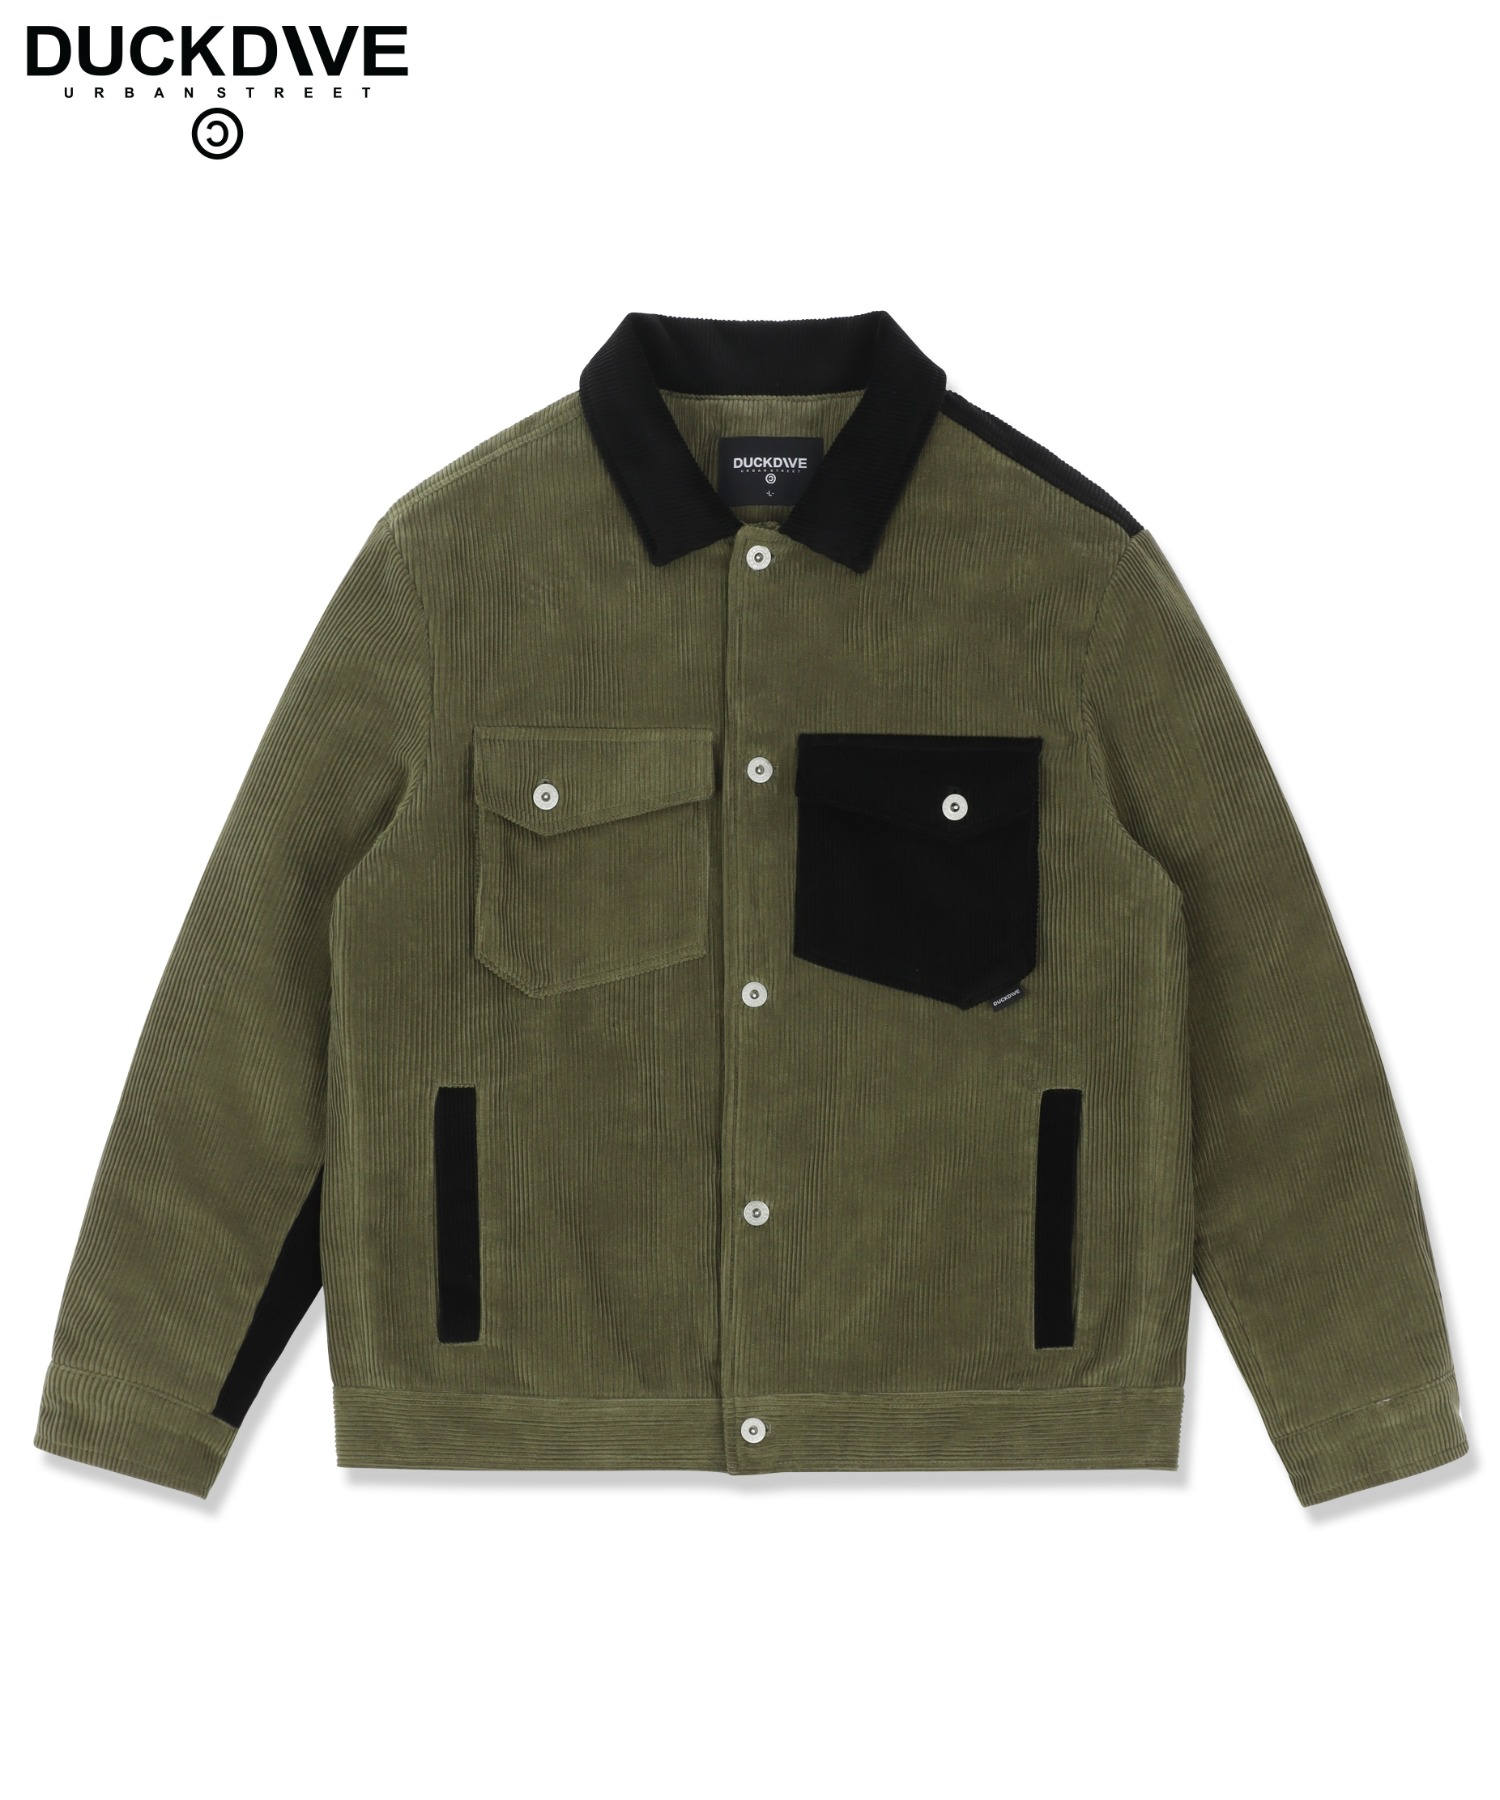 2oz QT STD CORDUROY TK JACKET MIX KHAKI